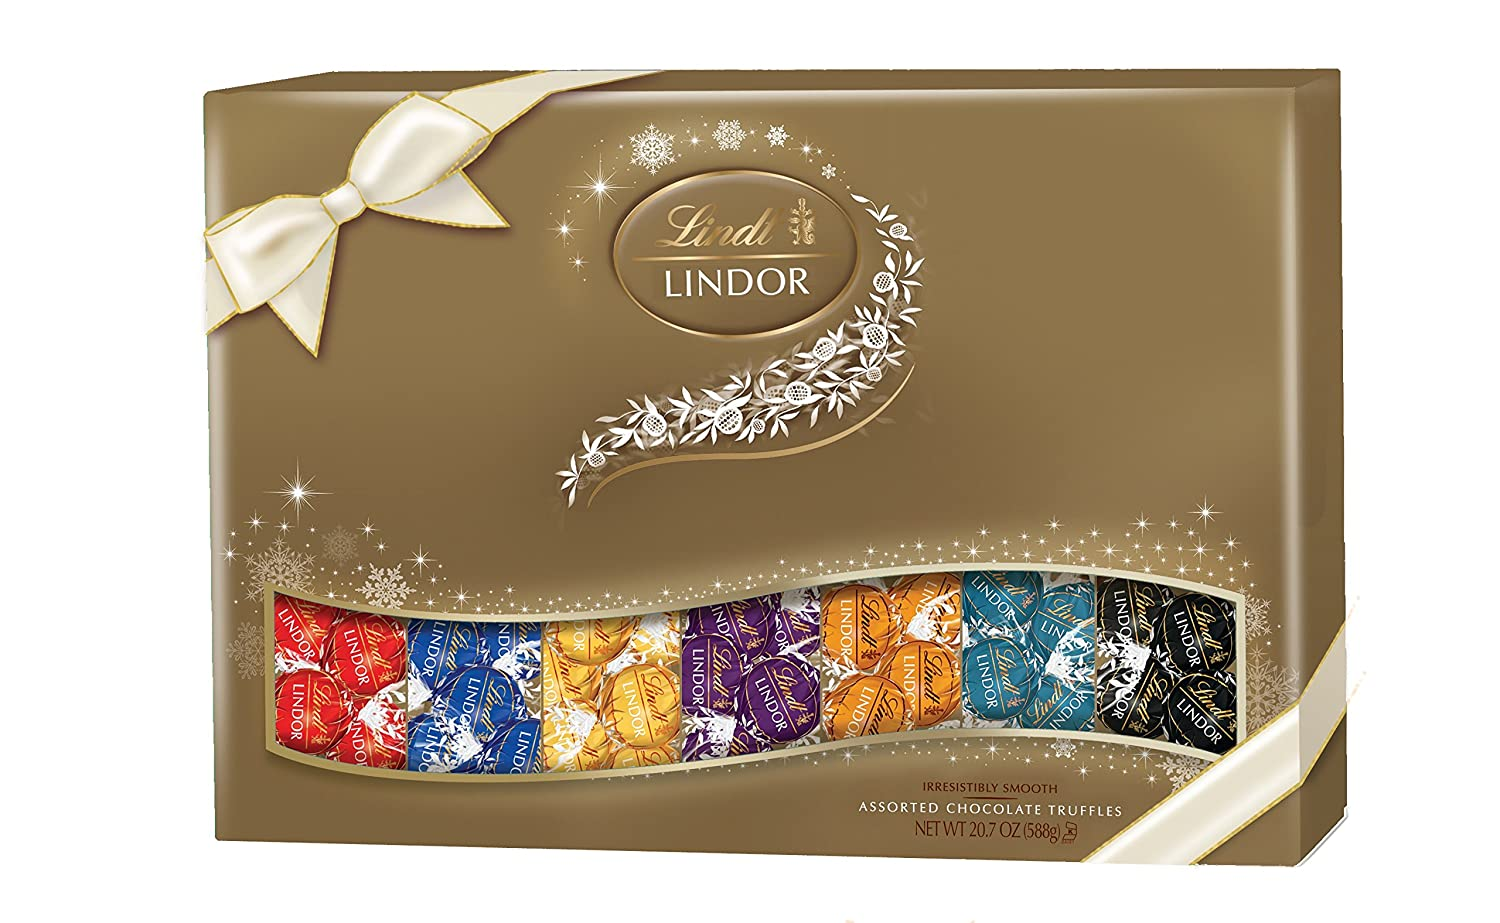 Lindt LINDOR Assorted Chocolate Deluxe Sampler Gift Box, 20.7oz